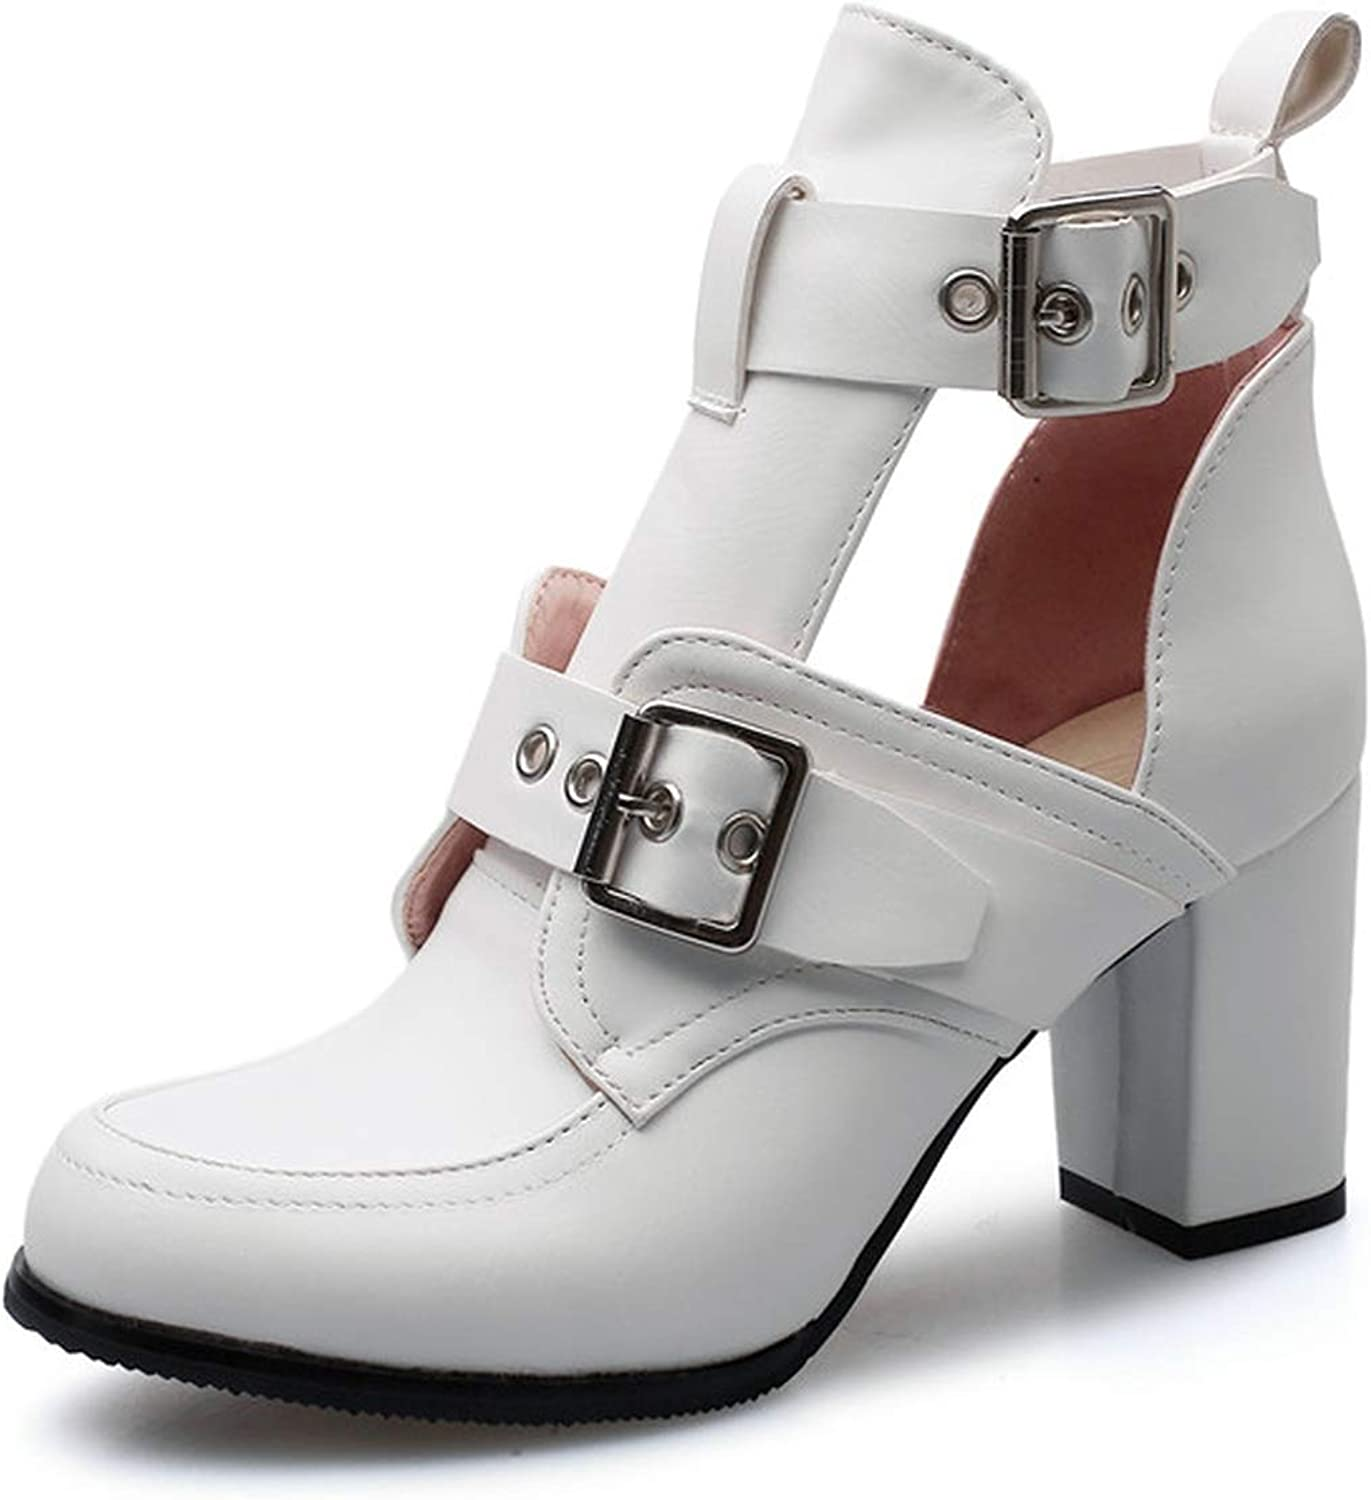 Gladiator High Heels shoes Women Round Toe Summer shoes Punk Party Prom shoes